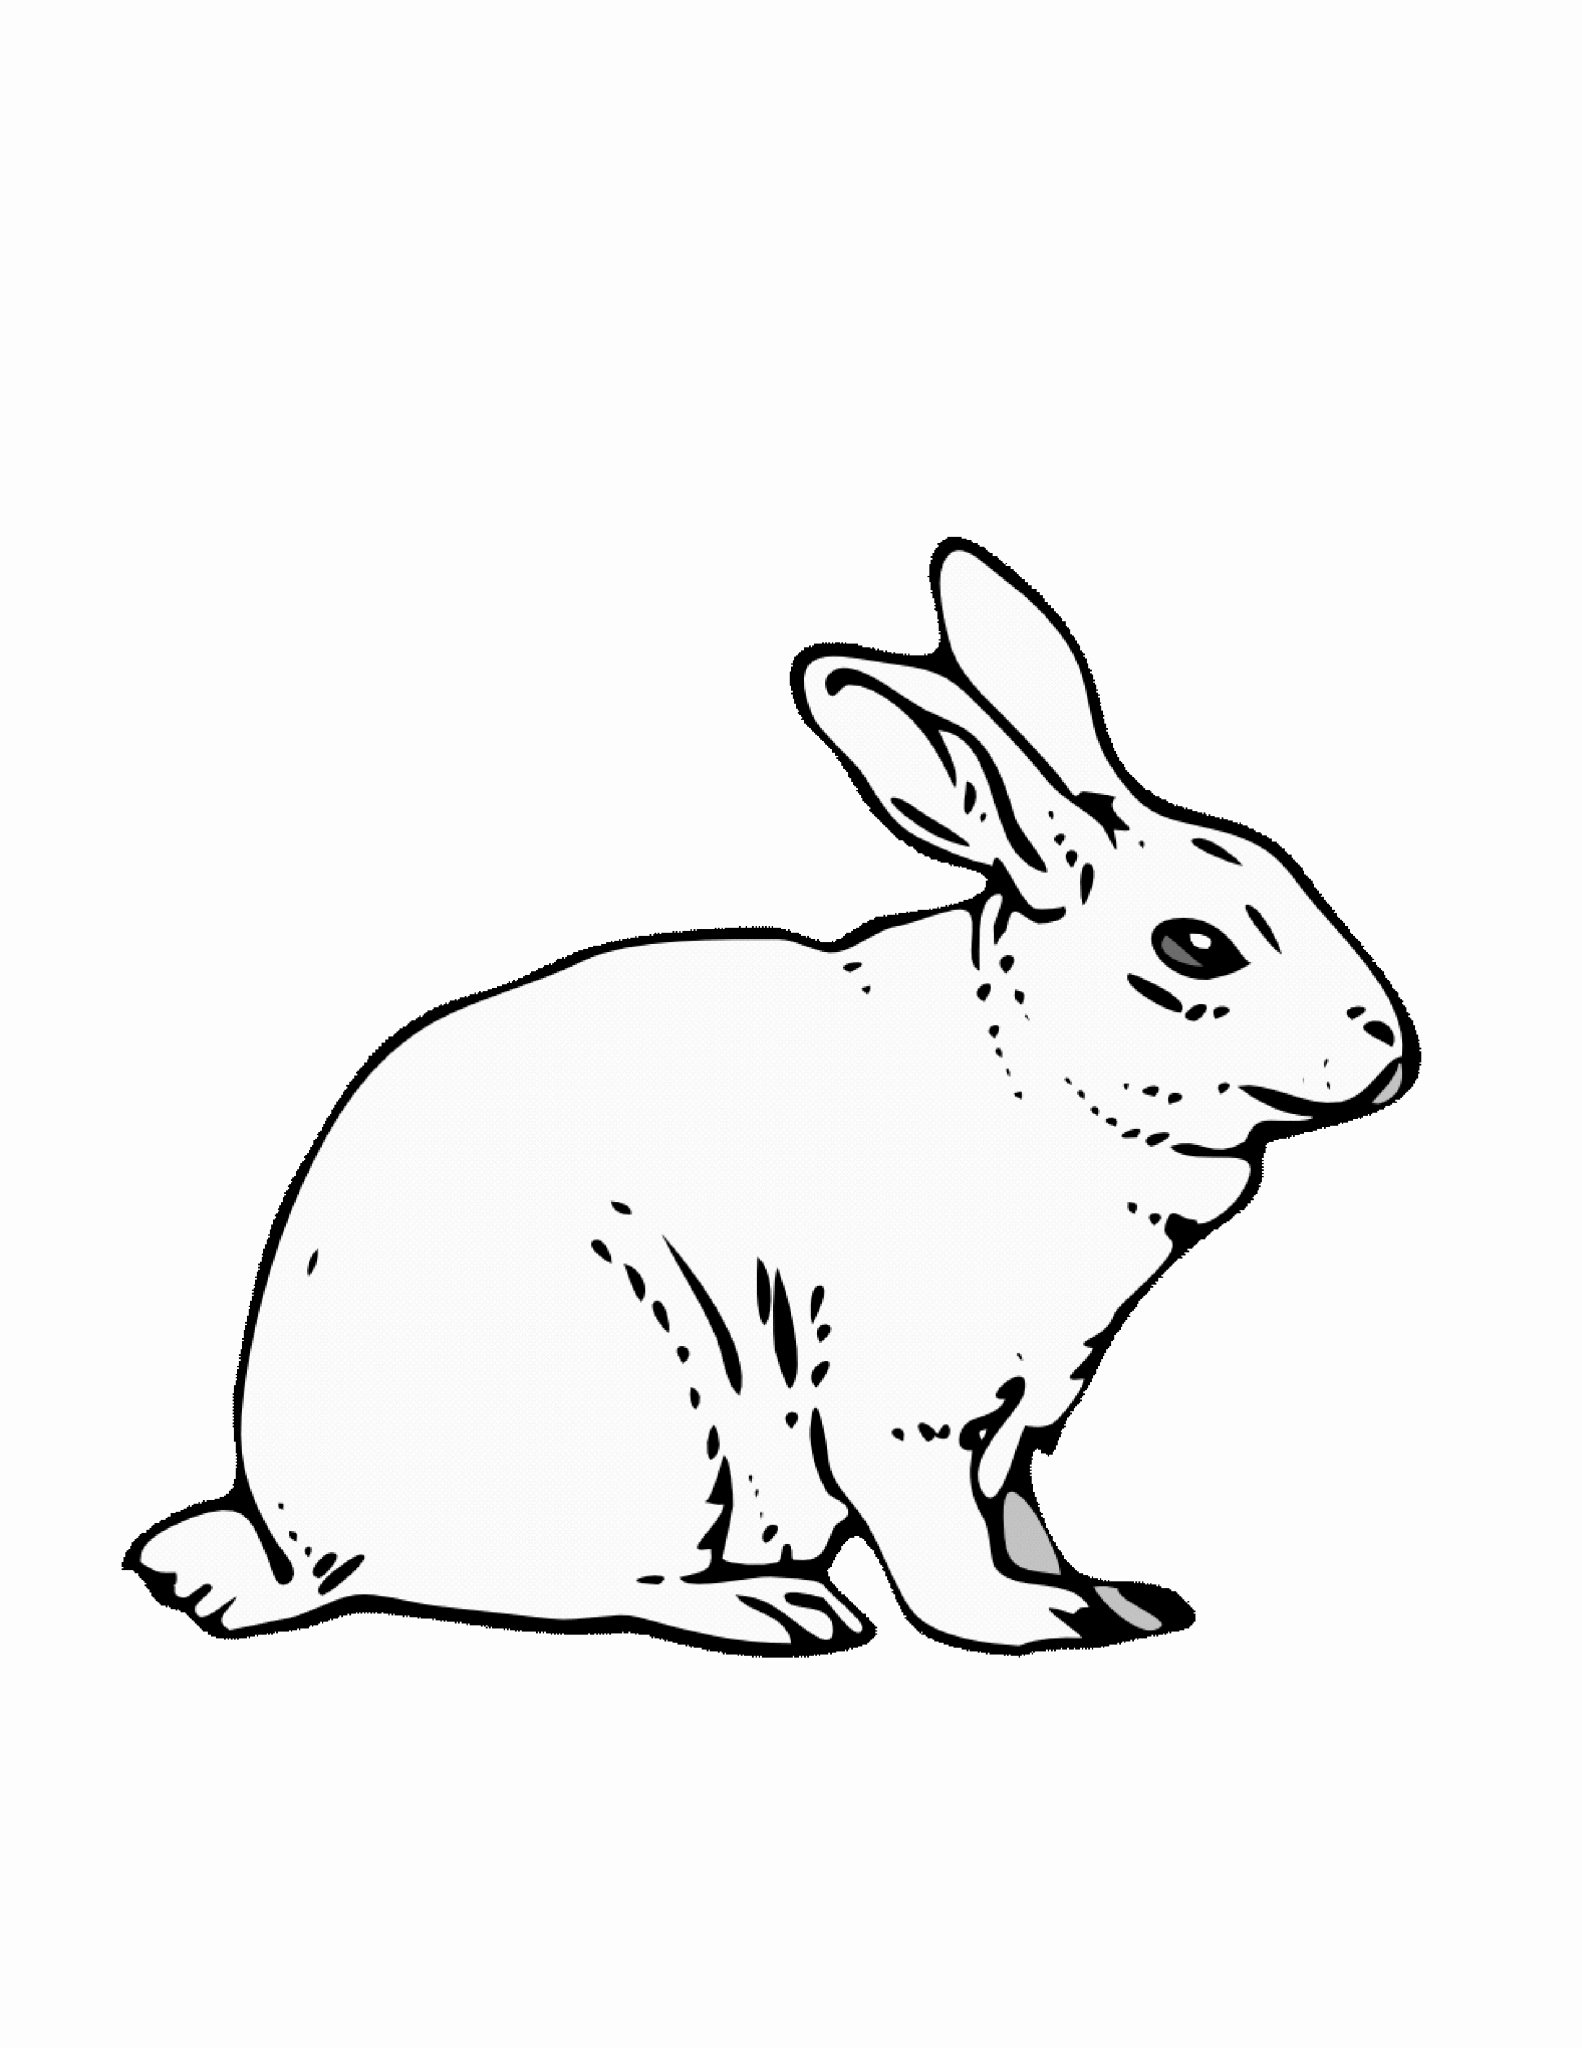 Pictures Of Bunnies to Print Lovely Coloring Pages A Rabbit Printable